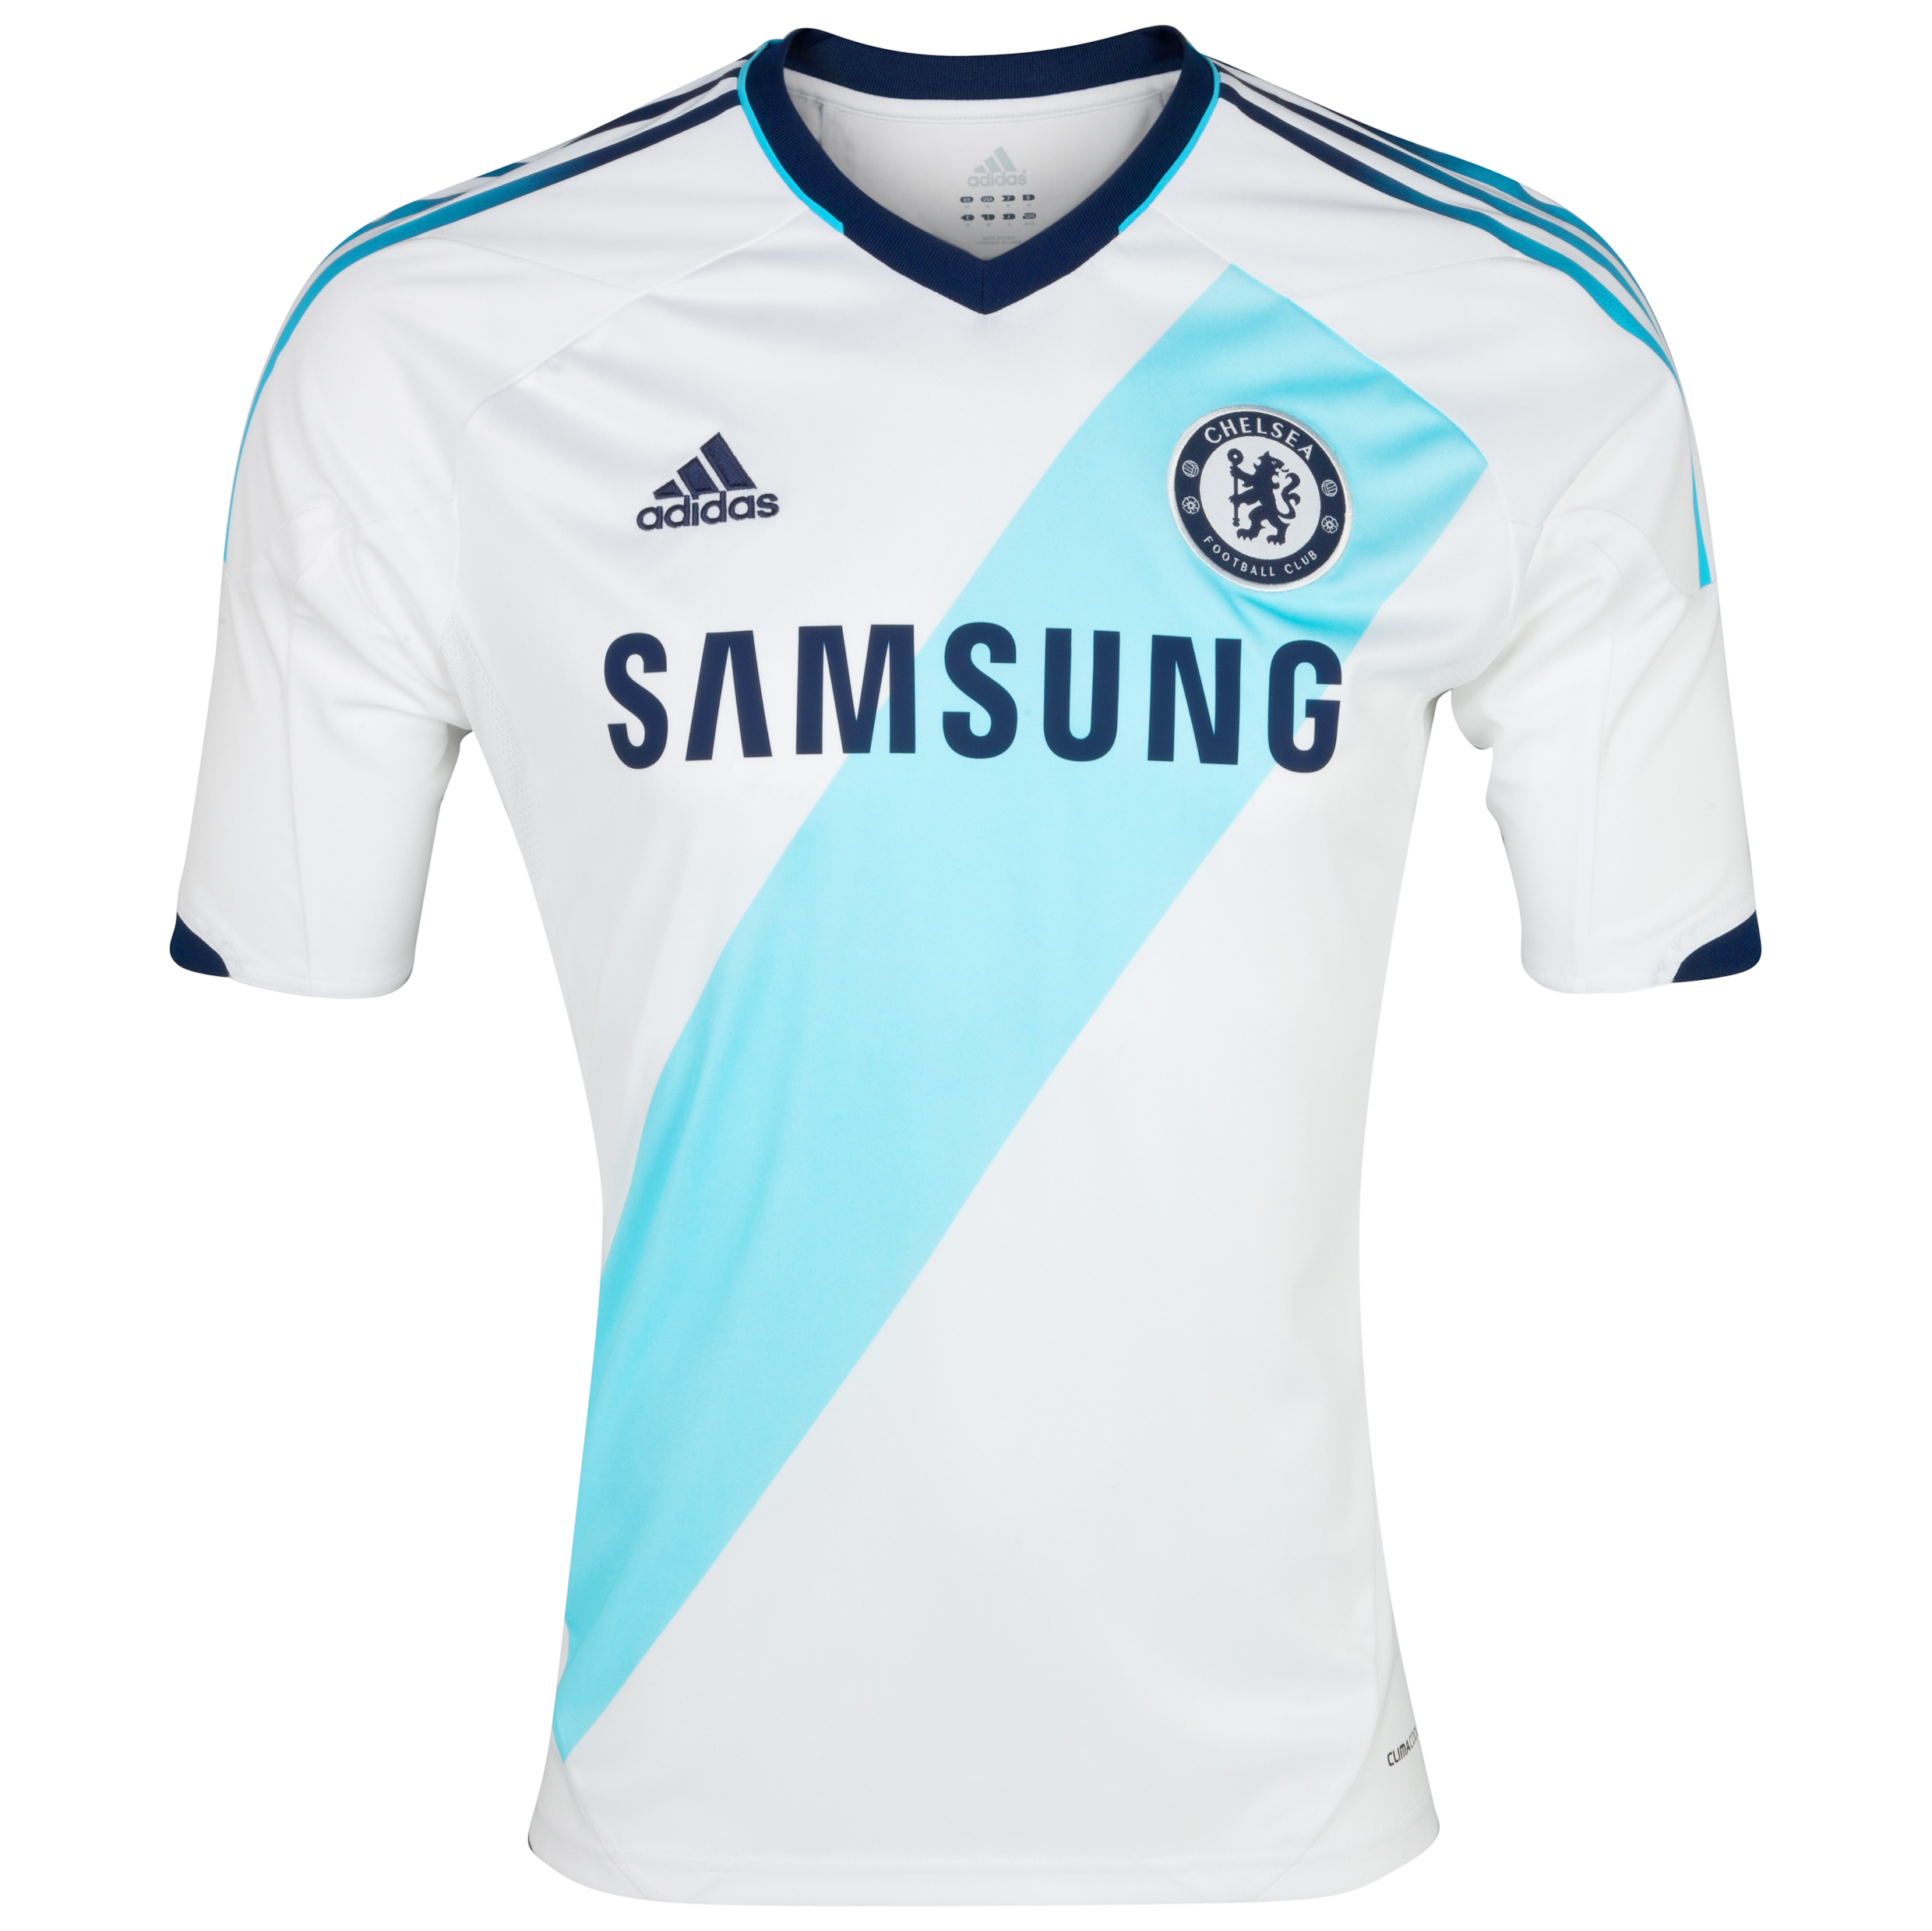 Chelsea Away Shirt 2012/13 Youths